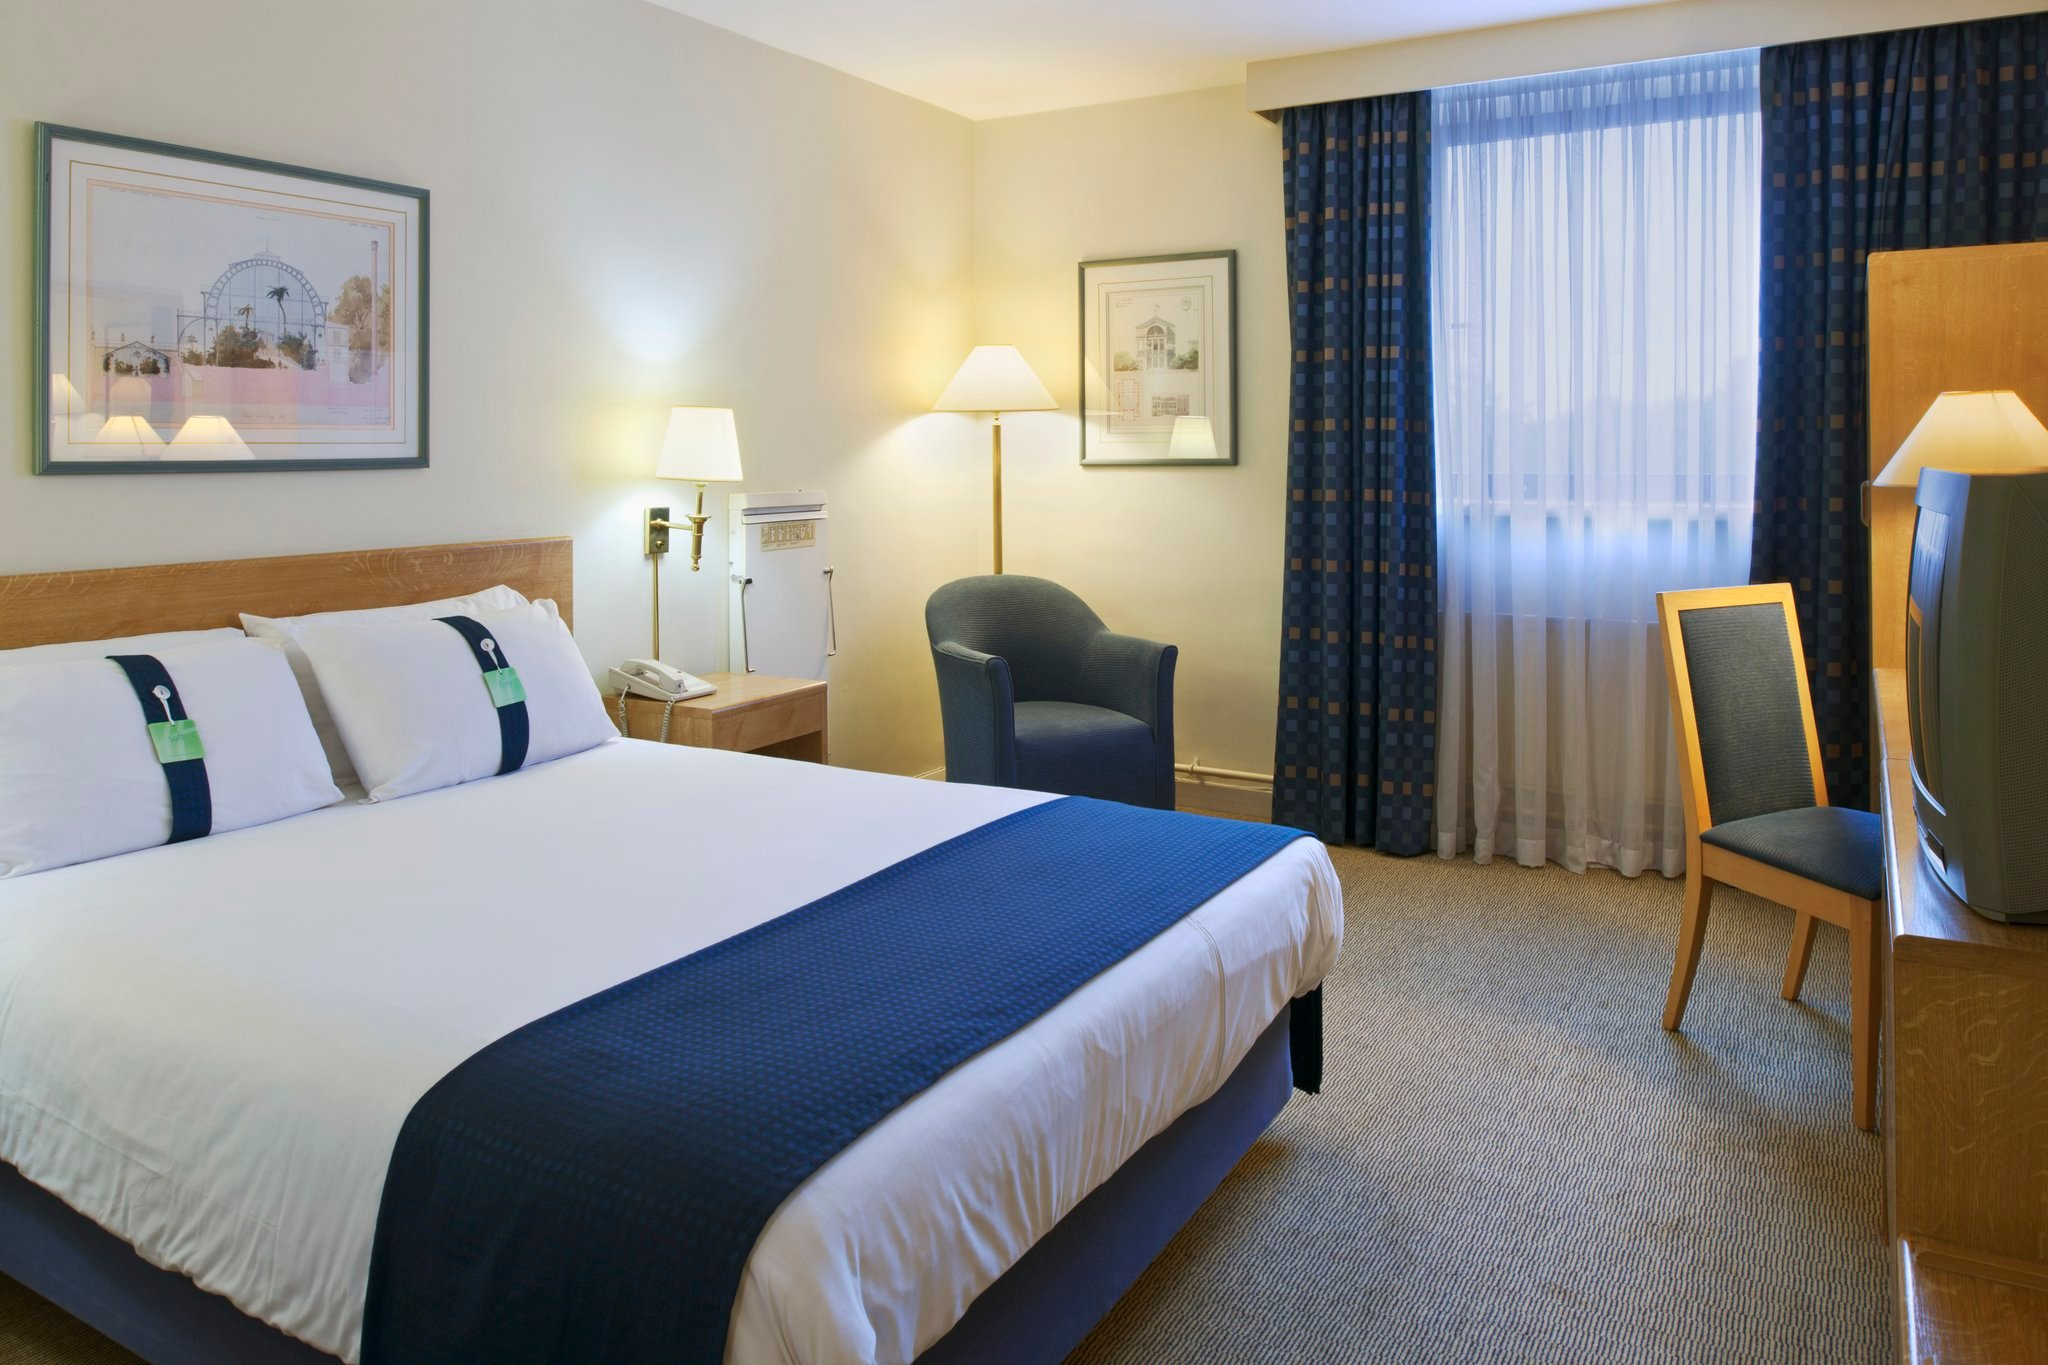 Bedroom Furniture Warrington Holiday Inn Warrington Updated 2017 Hotel Reviews Price